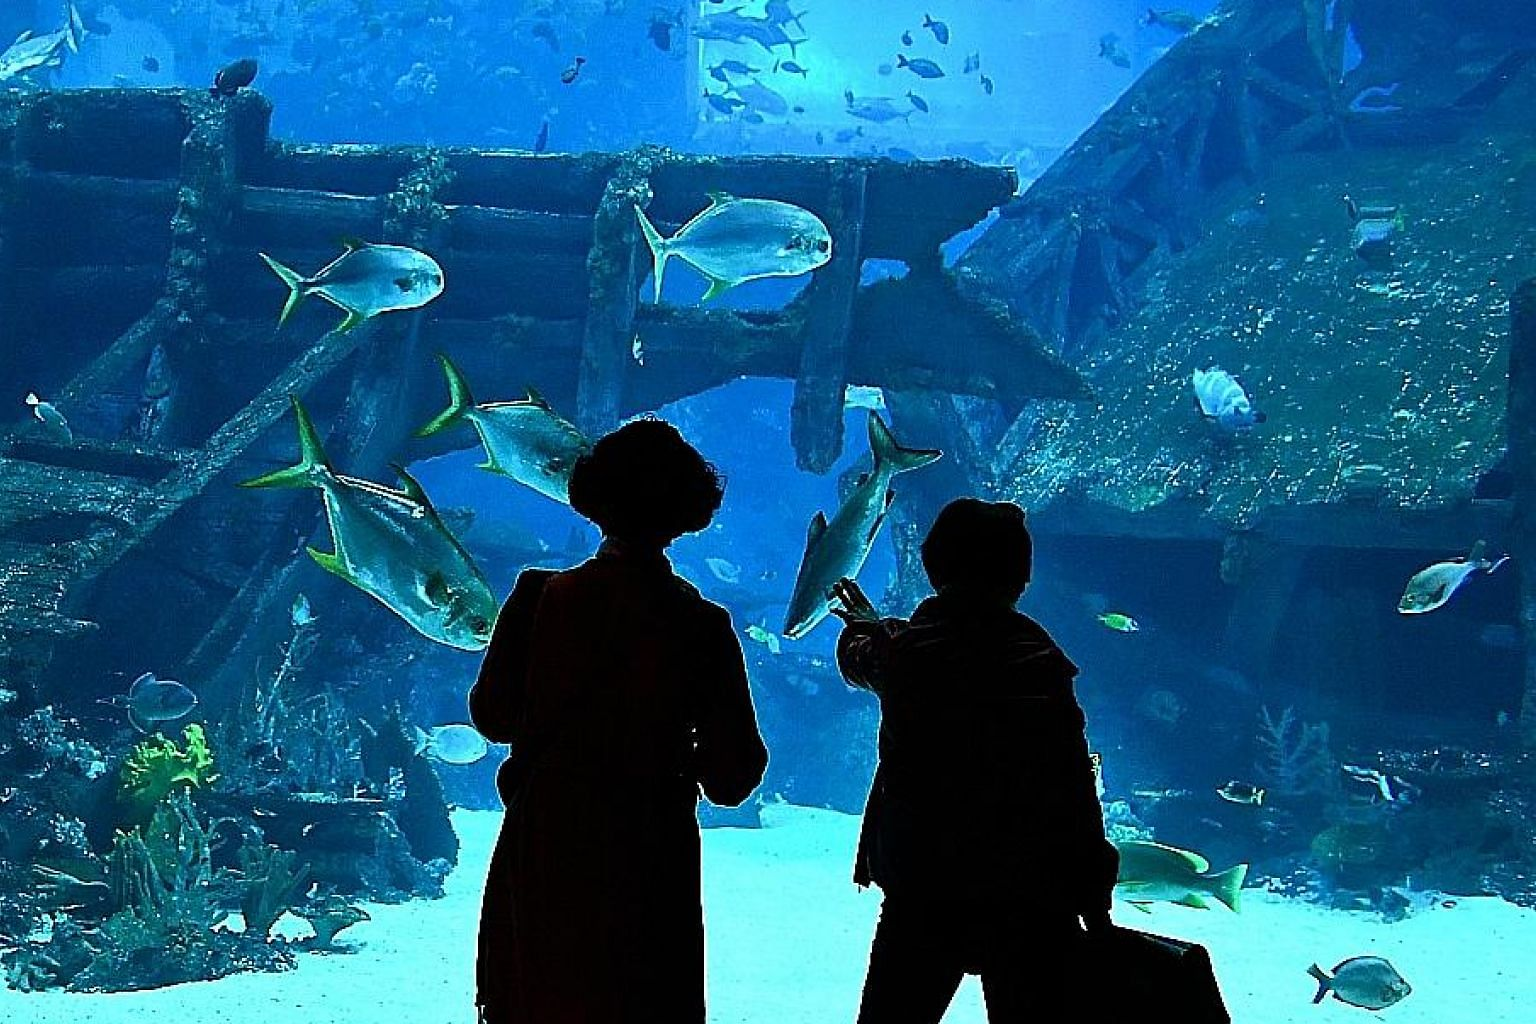 Genting Singapore said its SEA Aquarium saw its 10th millionth visitor during the first quarter. Meanwhile, Universal Studios Singapore received its 25 millionth visitor.